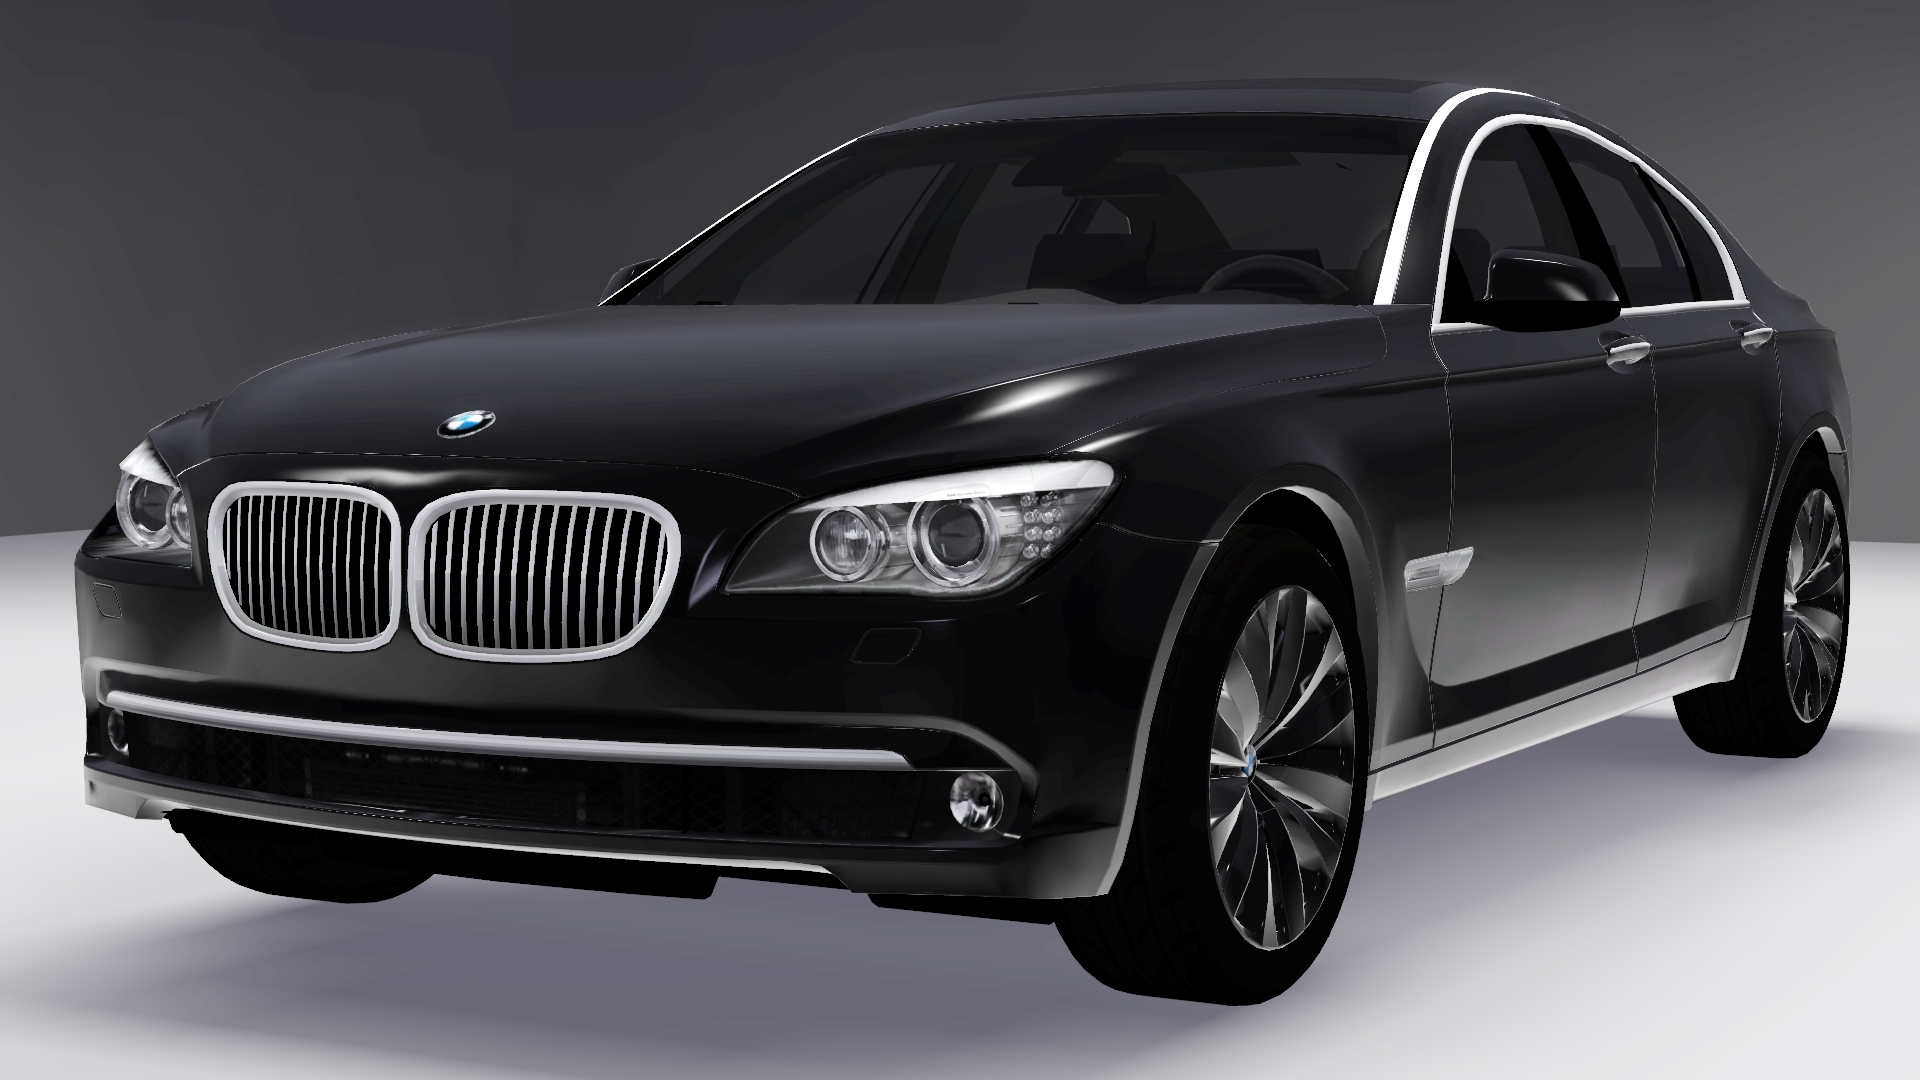 2010 BMW 750i by Fresh-Prince